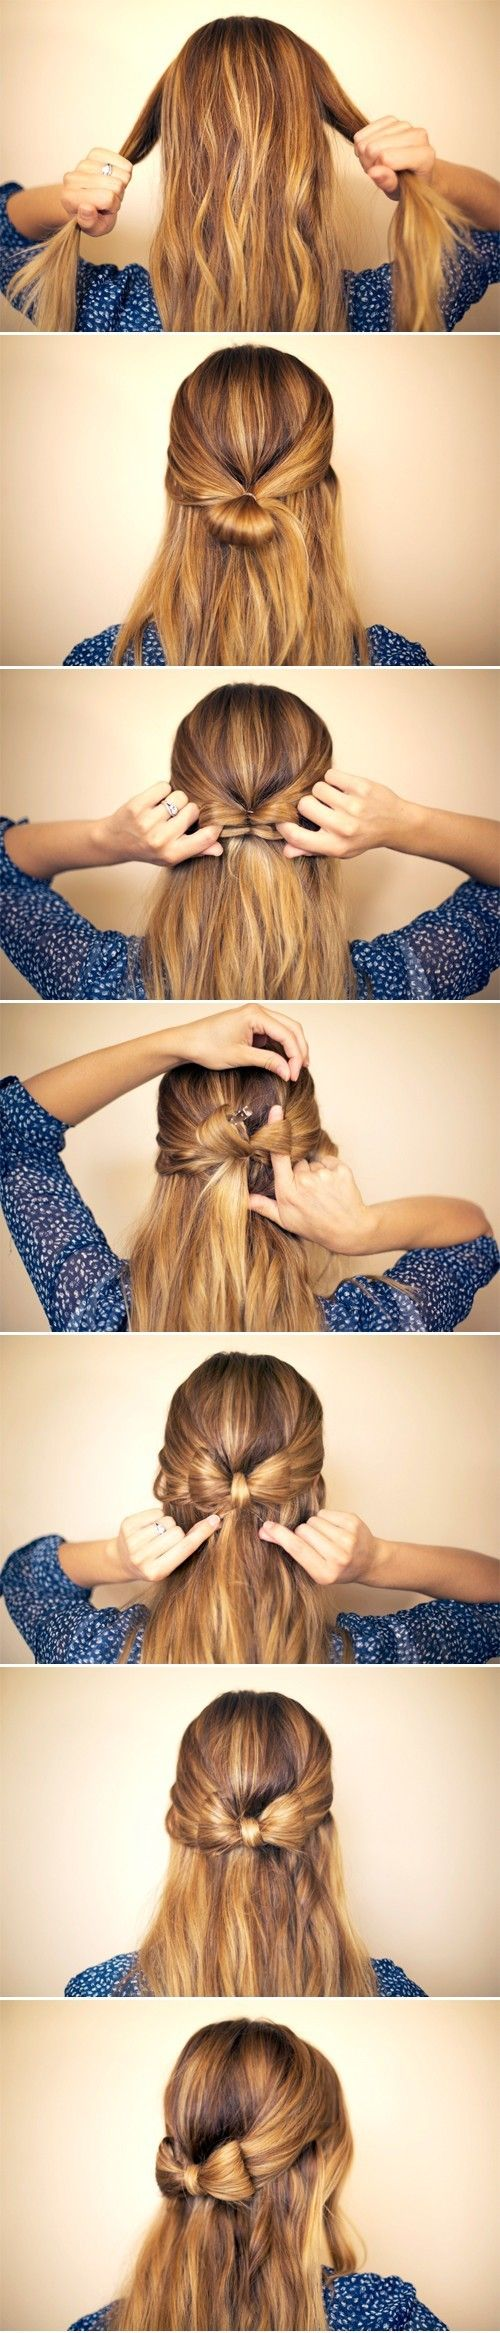 Hair bow! - Click image to find more Hair & Beauty Pinterest pins ….with curls @Amanda Snelson Snelson Snelson Snelson Snelson Sprader @Noel B B B Bass Bass Granger @Melissa Squires Squires Squires Squires Squires Staker